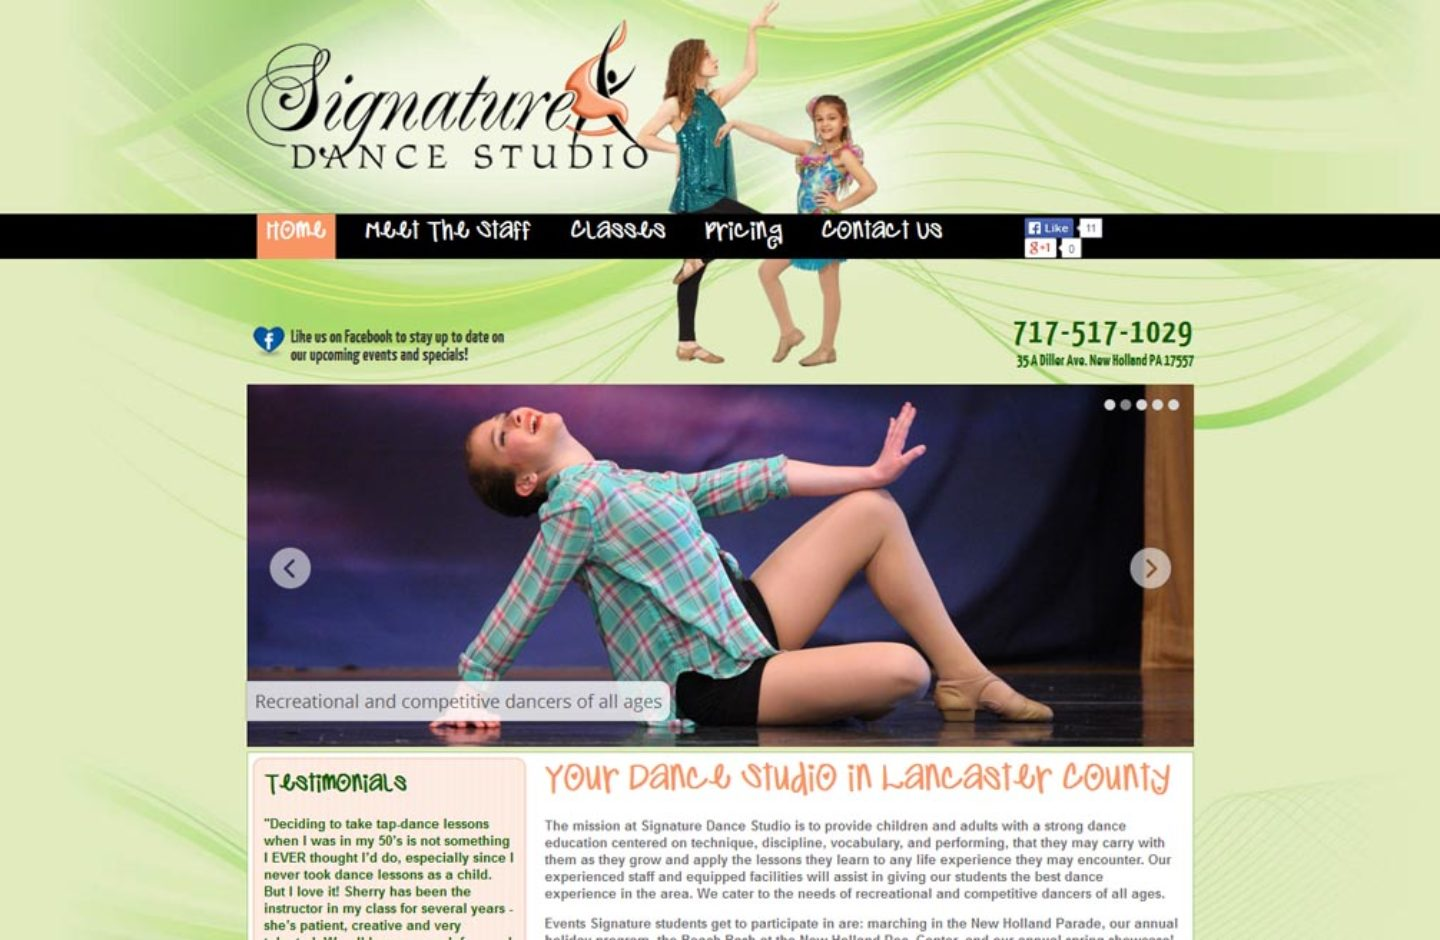 Signature Dance Studio